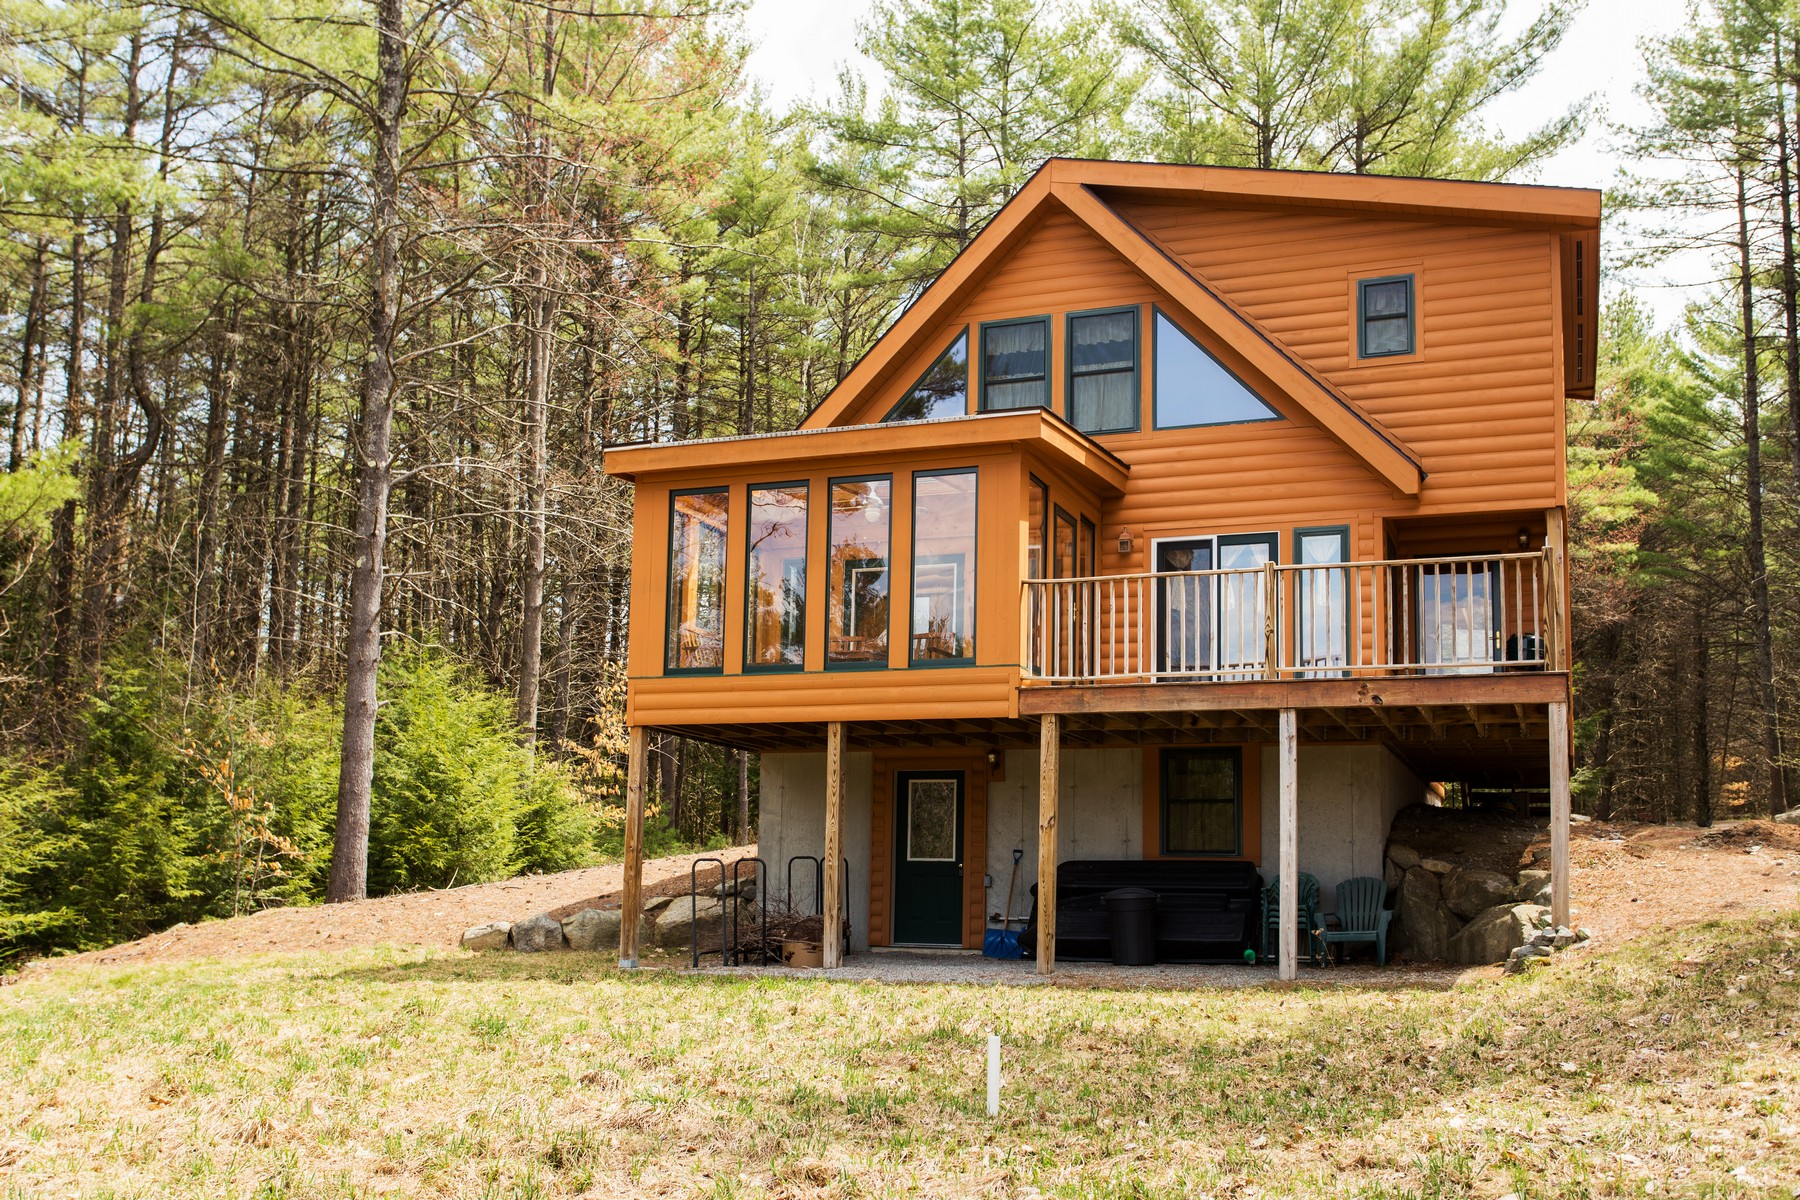 Maison unifamiliale pour l Vente à Green Mansions Log Home 93 Balsam Crest Rd Chestertown, New York 12817 États-Unis